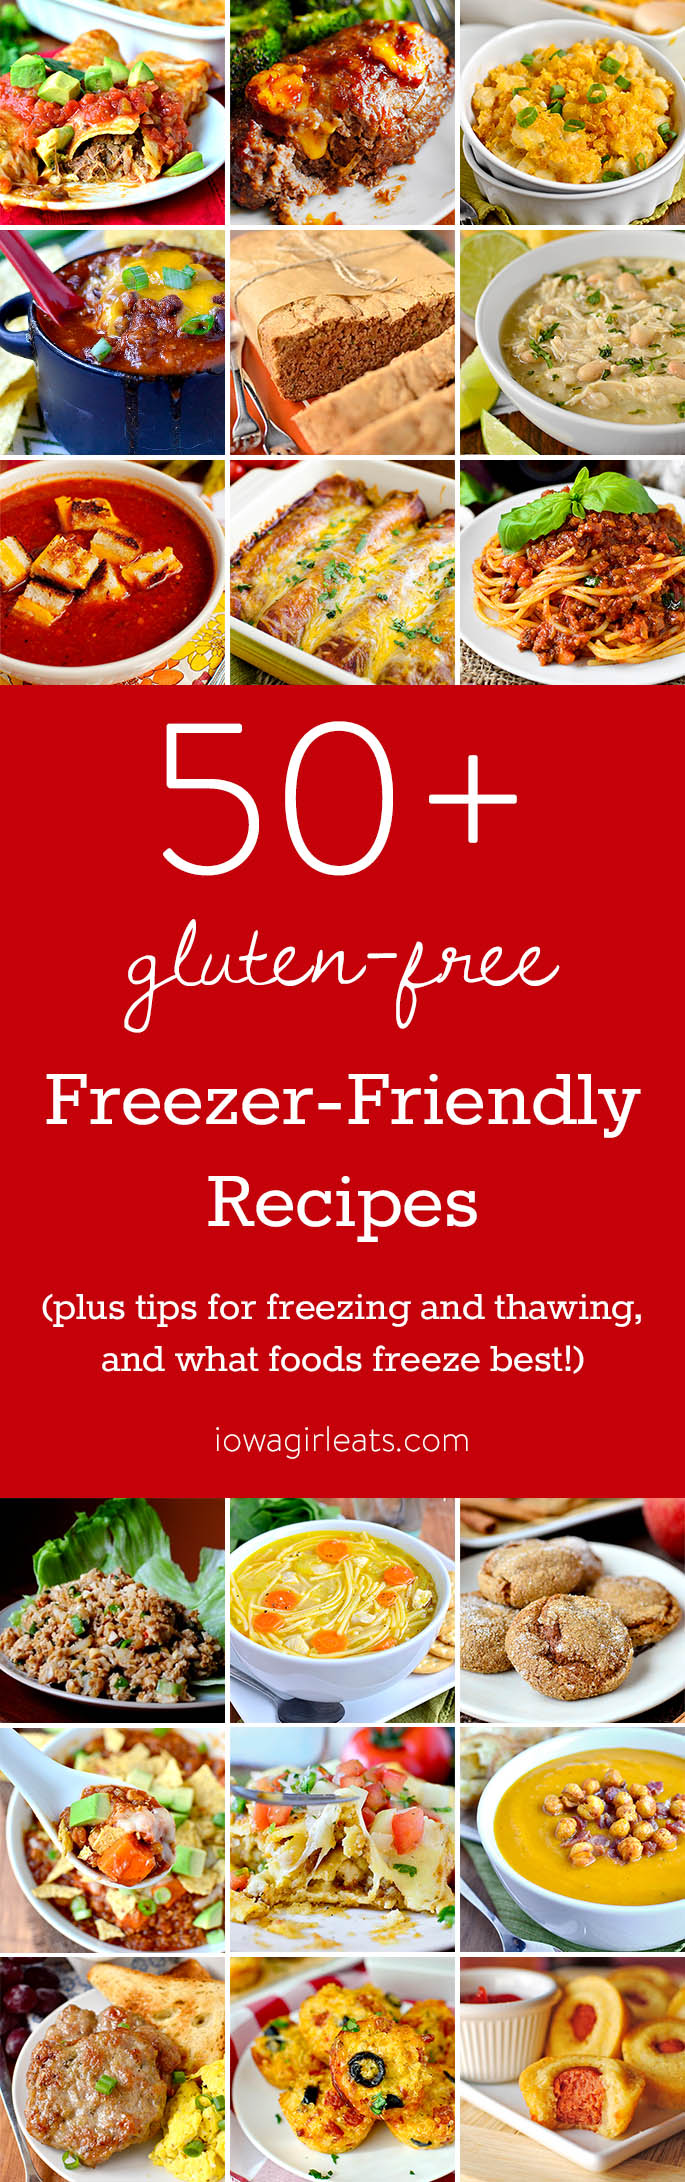 Freezer cooking is a wonderful way to save time and money in the kitchen! Here are 50+ gluten-free freezer-friendly recipes, plus tips on how to freeze foods, and which foods do and do not freeze well. | iowagirleats.com